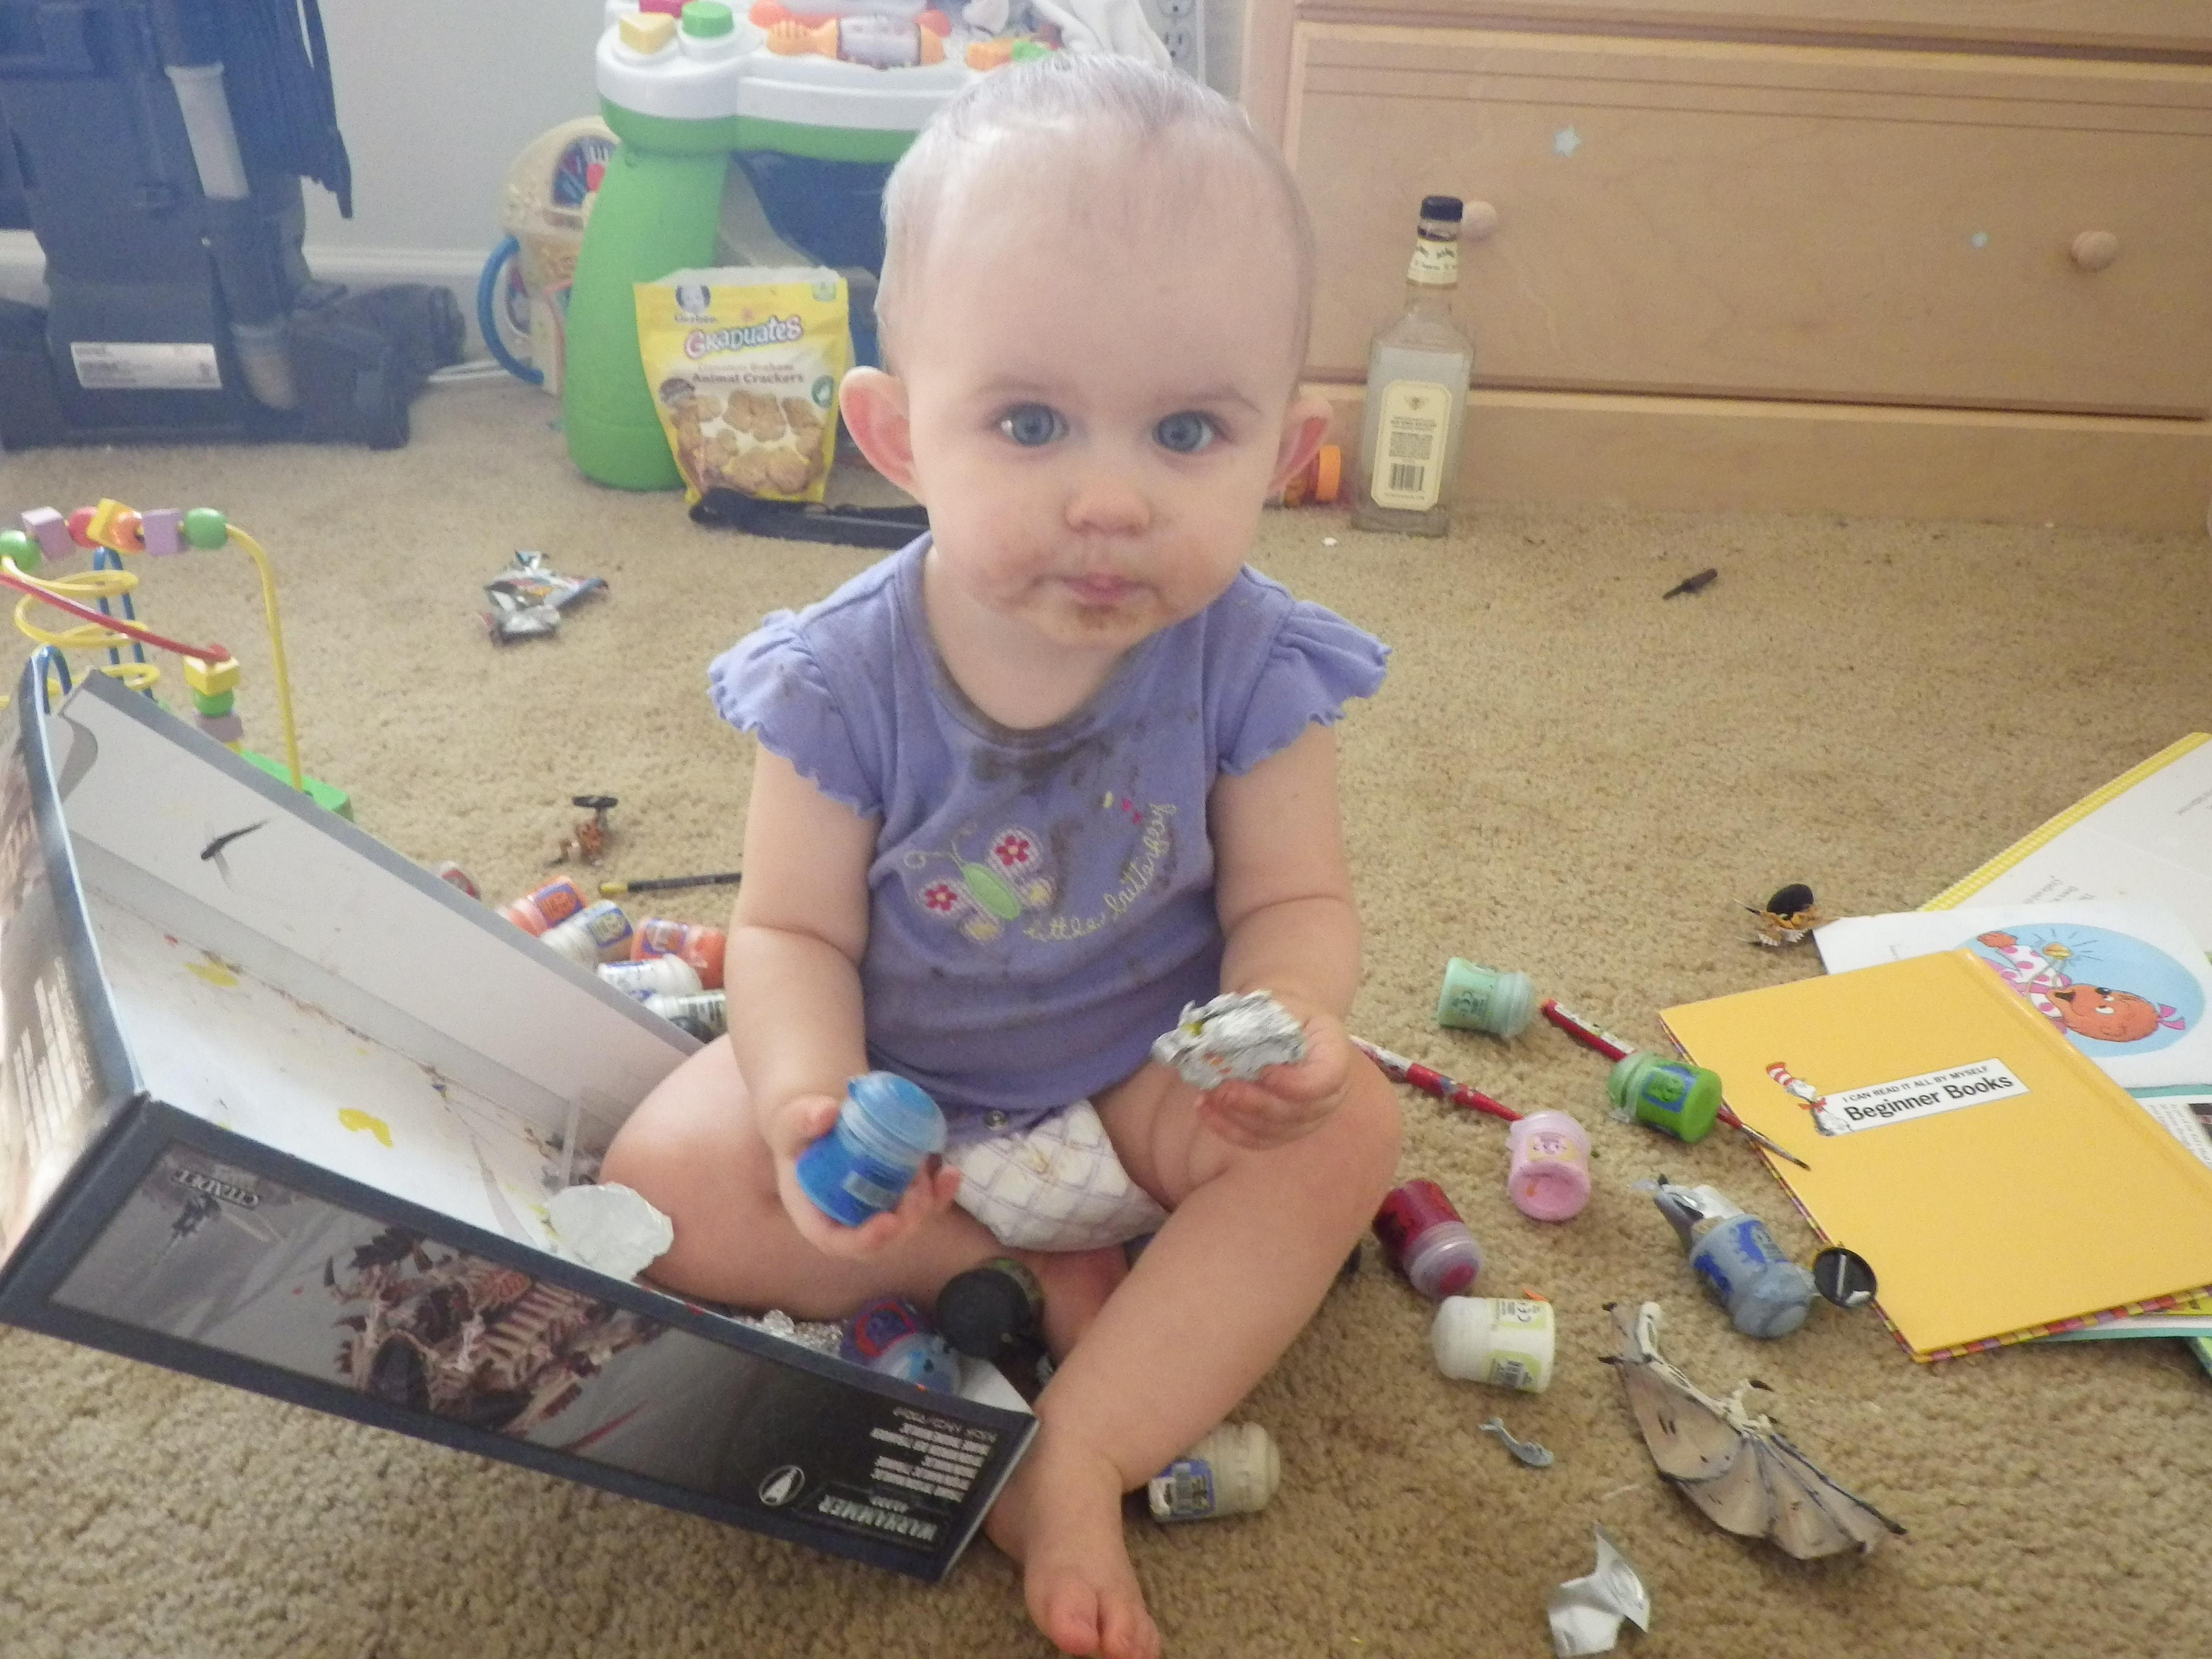 My daughter helped by removing every object from my paint box